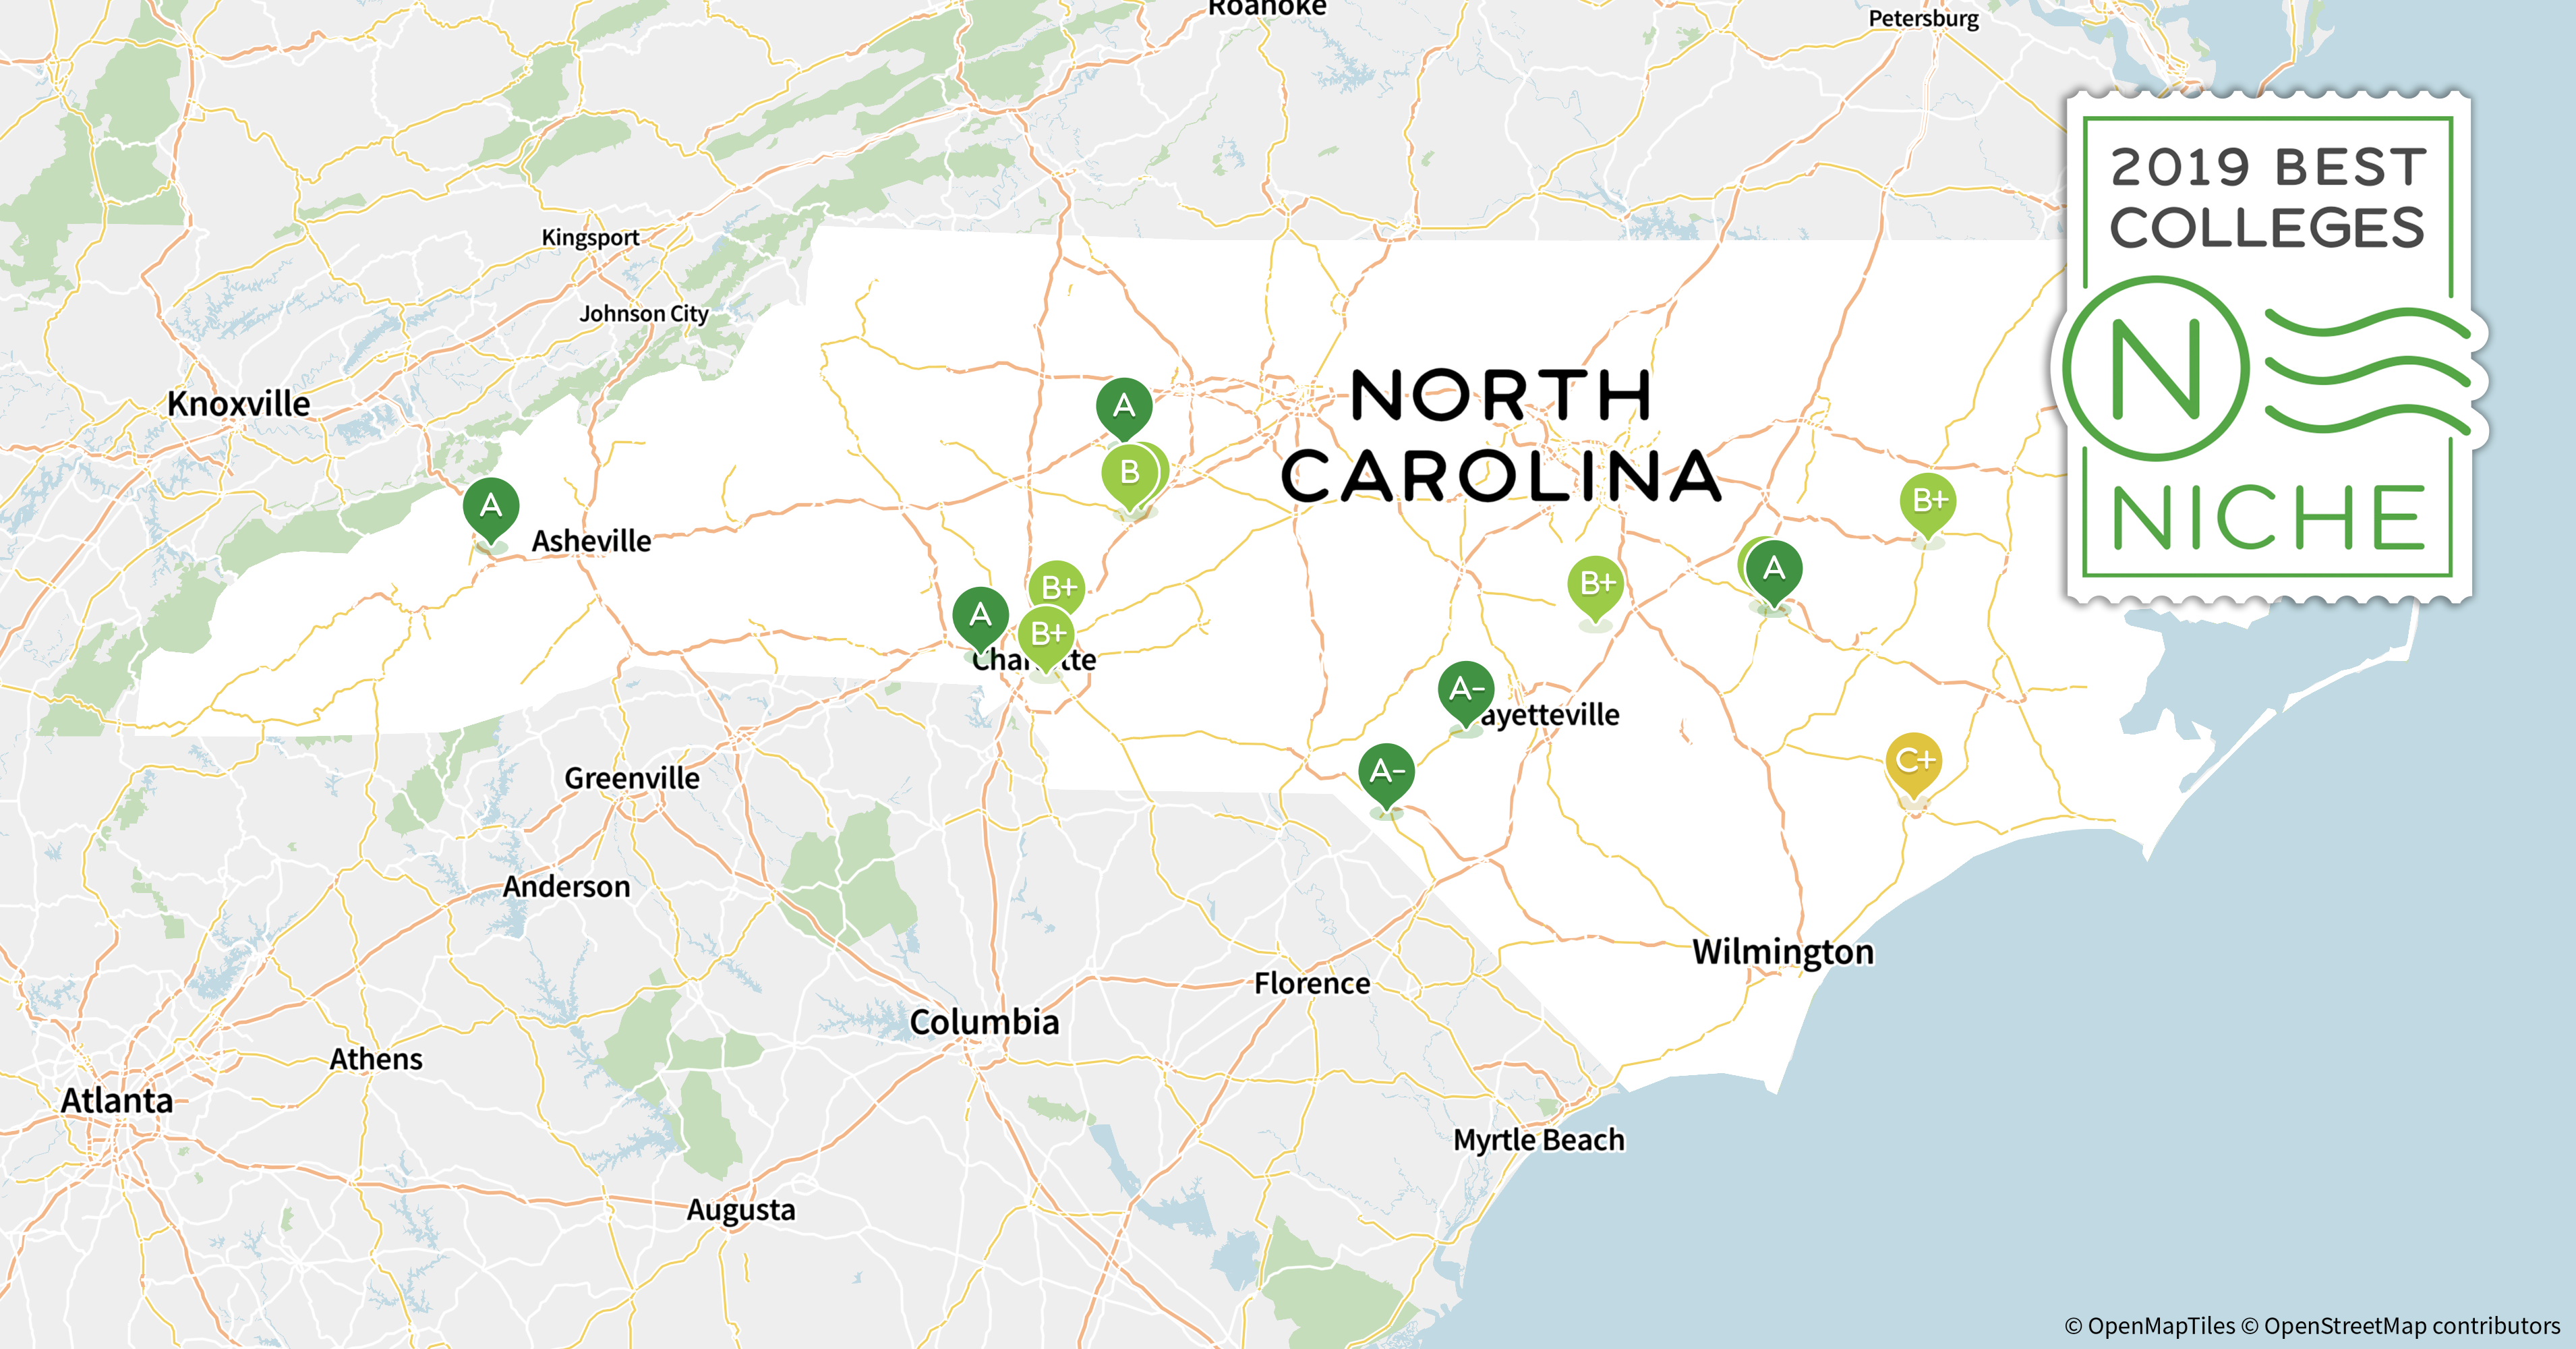 Unc Greensboro Campus Map.2019 Best Colleges In North Carolina Niche